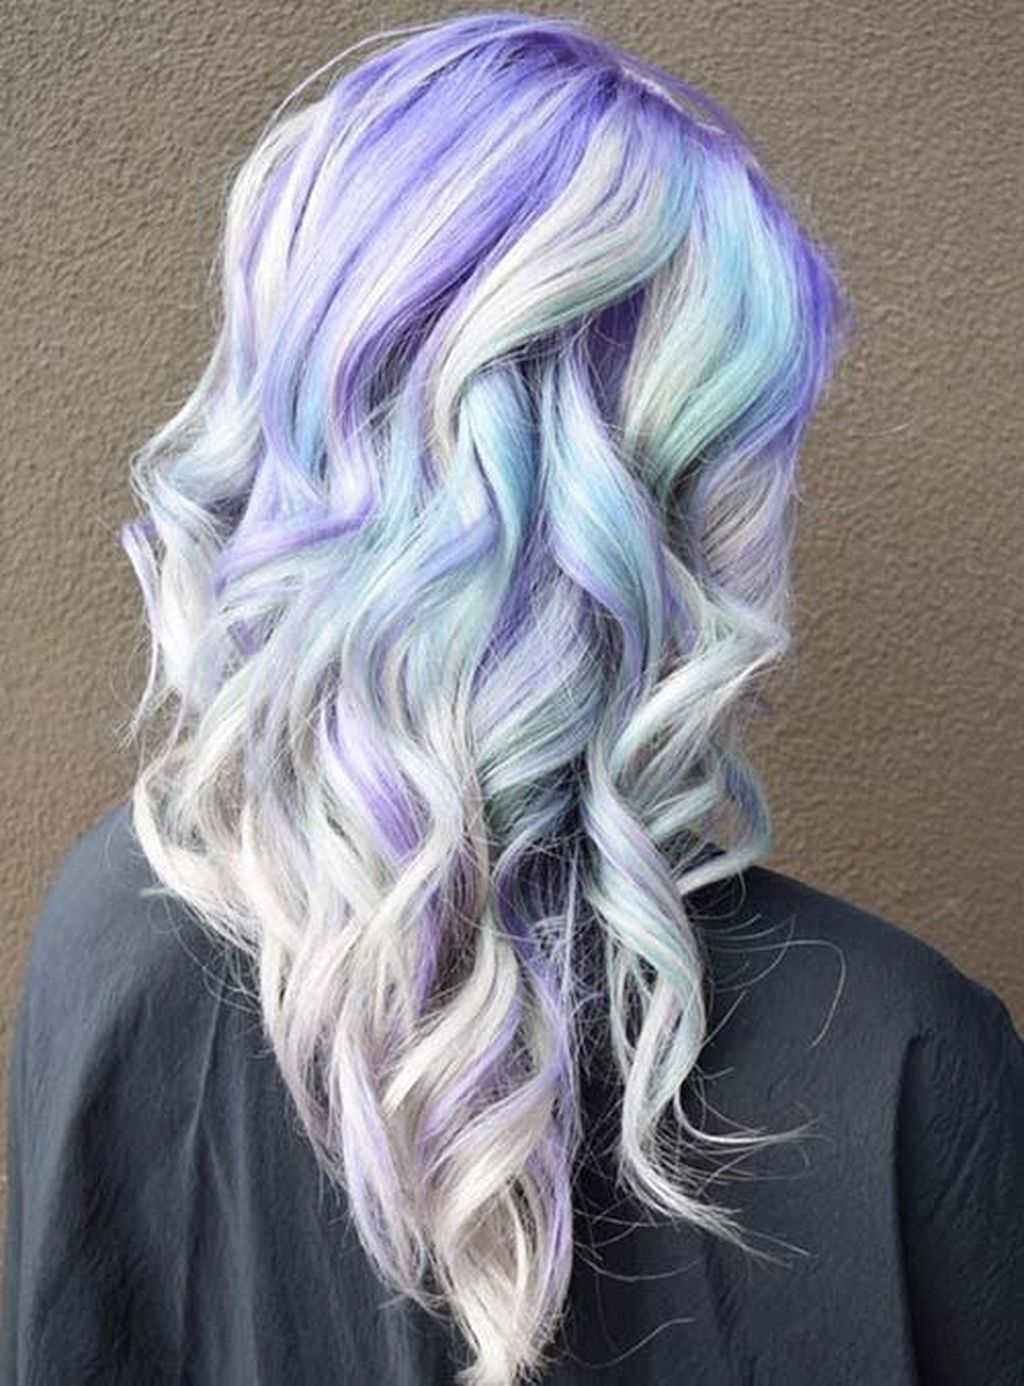 Cool 51 Inspiring Bold Ombre Hair Colors Ideas Trend 2018